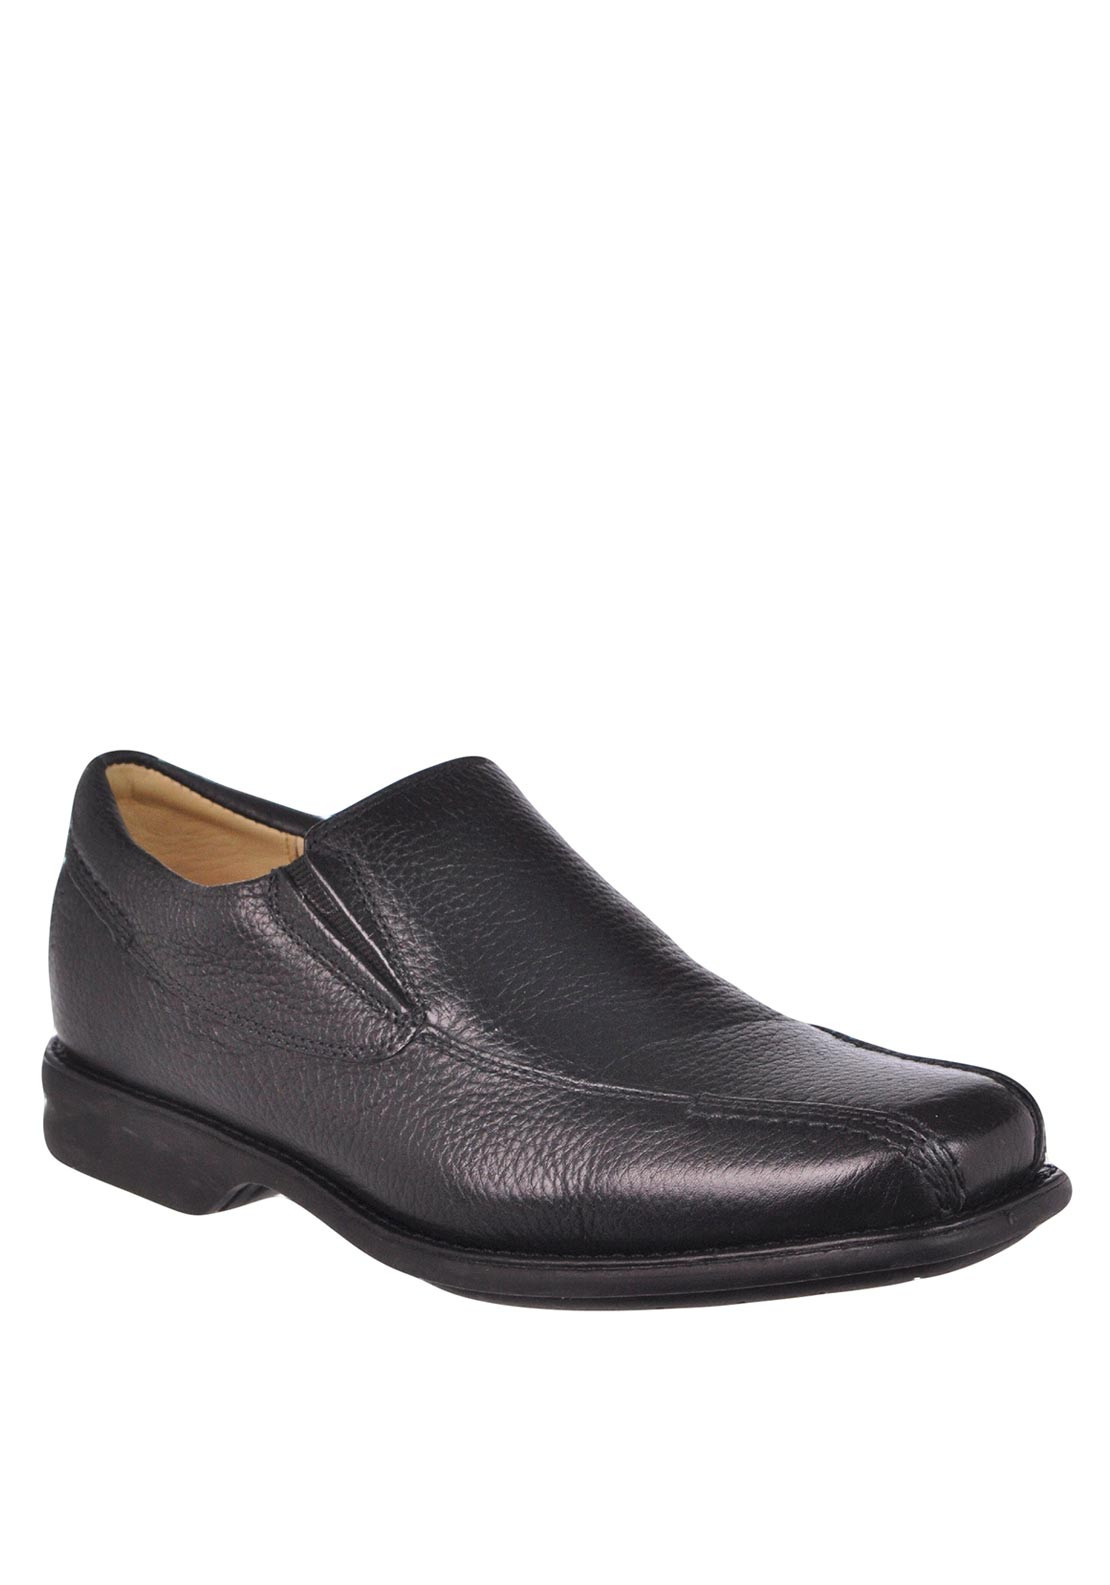 Anatomic & Co Mens Belem Leather Slip-On Shoe, Black